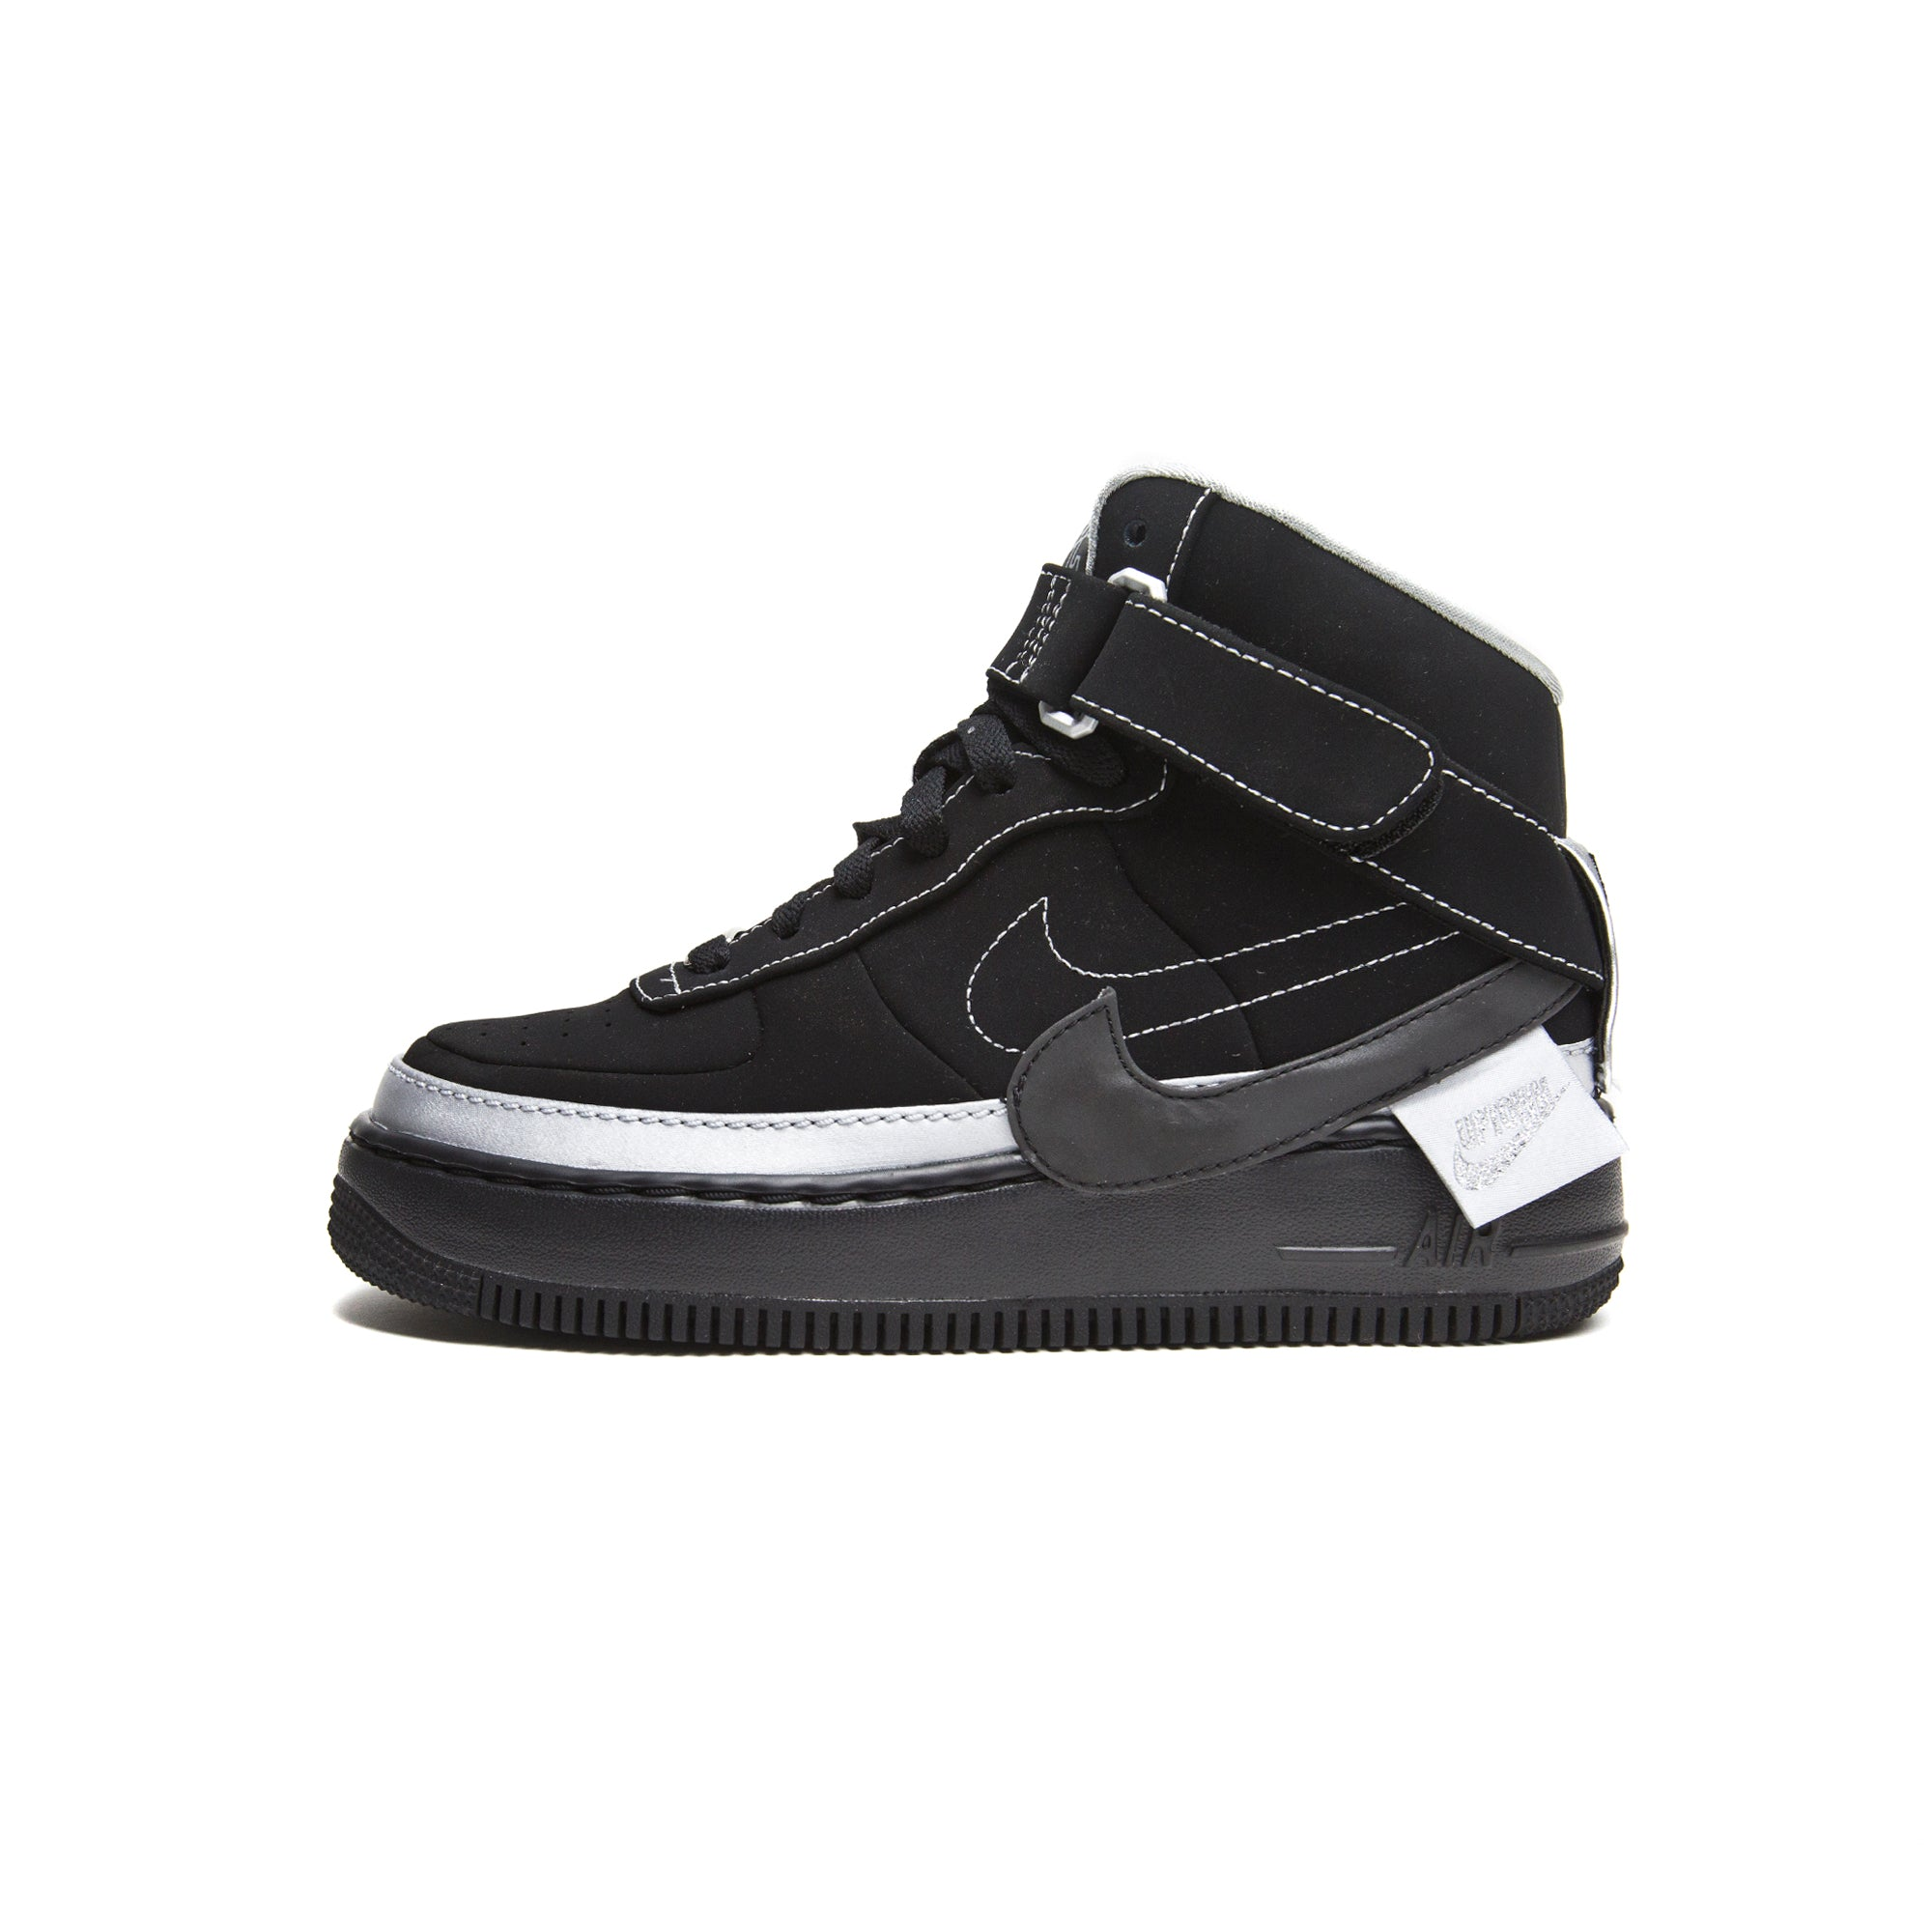 finest selection 0d39a 73f09 Nike Rox Brown Air Force 1 Jester Hi XX  BV1575-001